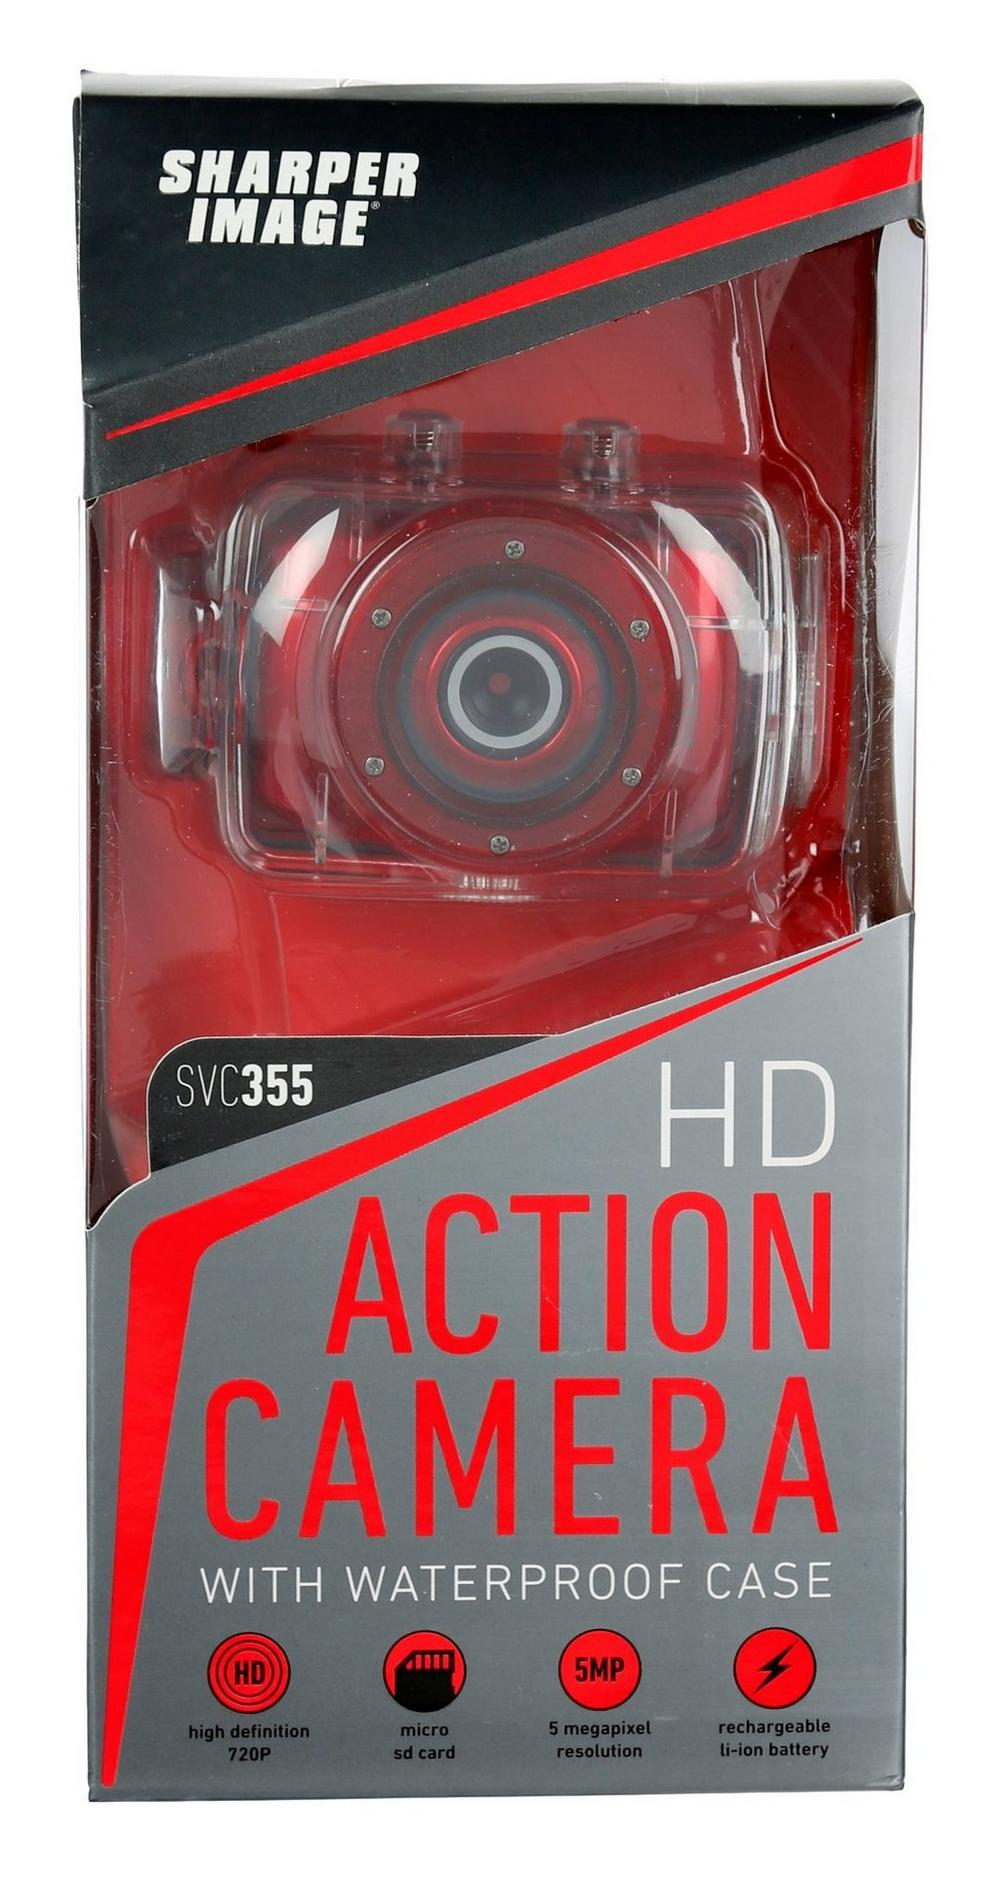 Hd Action Camera W Waterproof Case Red Burkes Outlet